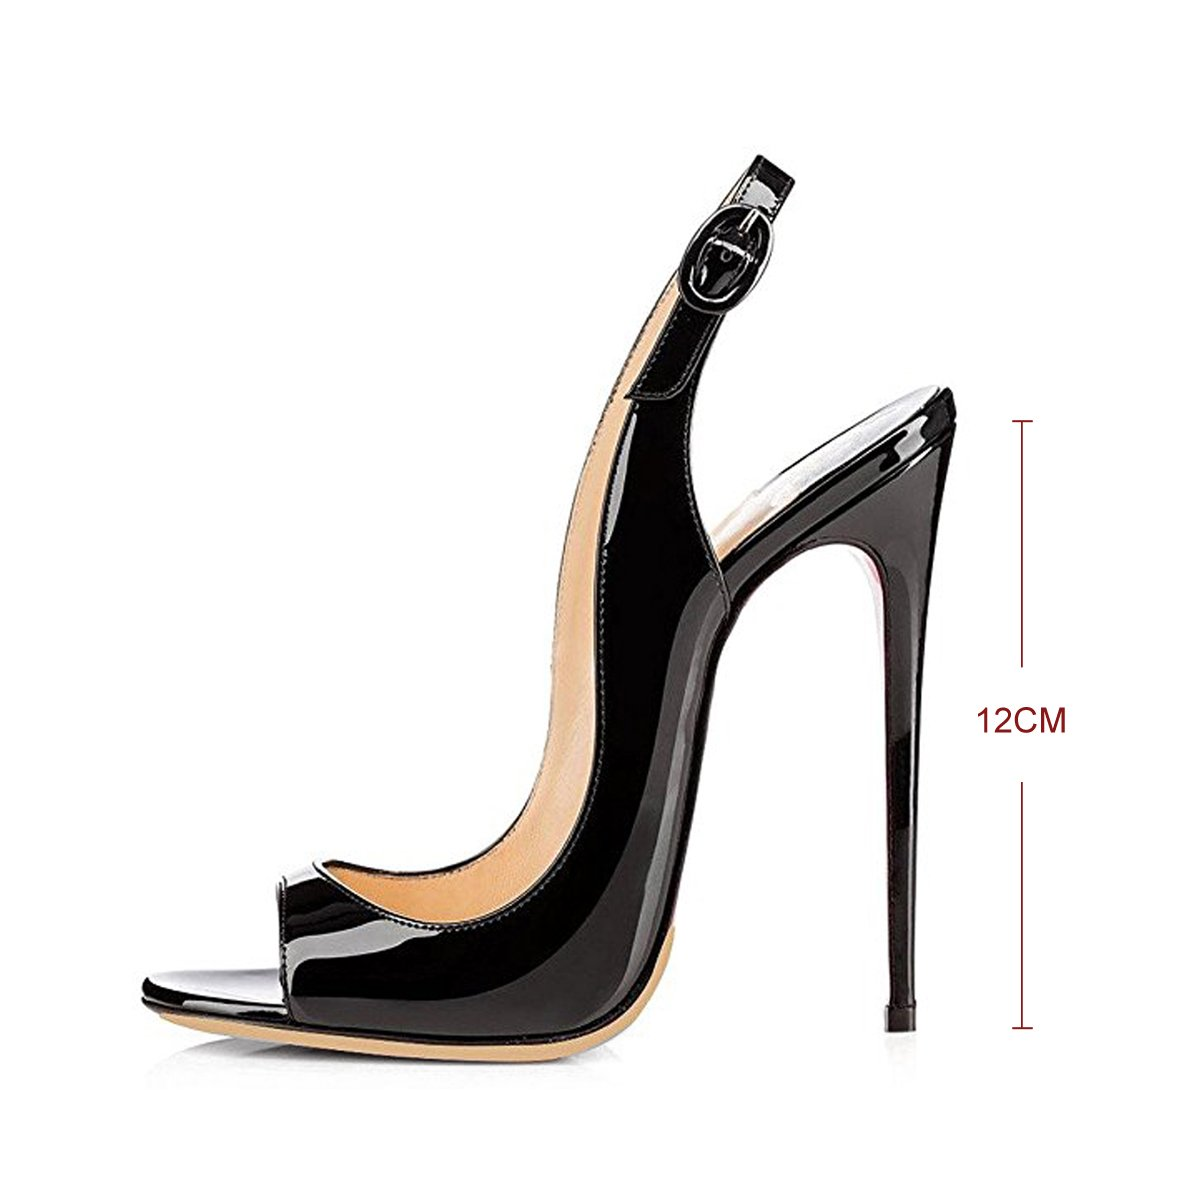 6743f523a66 onlymaker Women's Peep Toe Heeled Sandals Slingback High Heel Stiletto Pumps